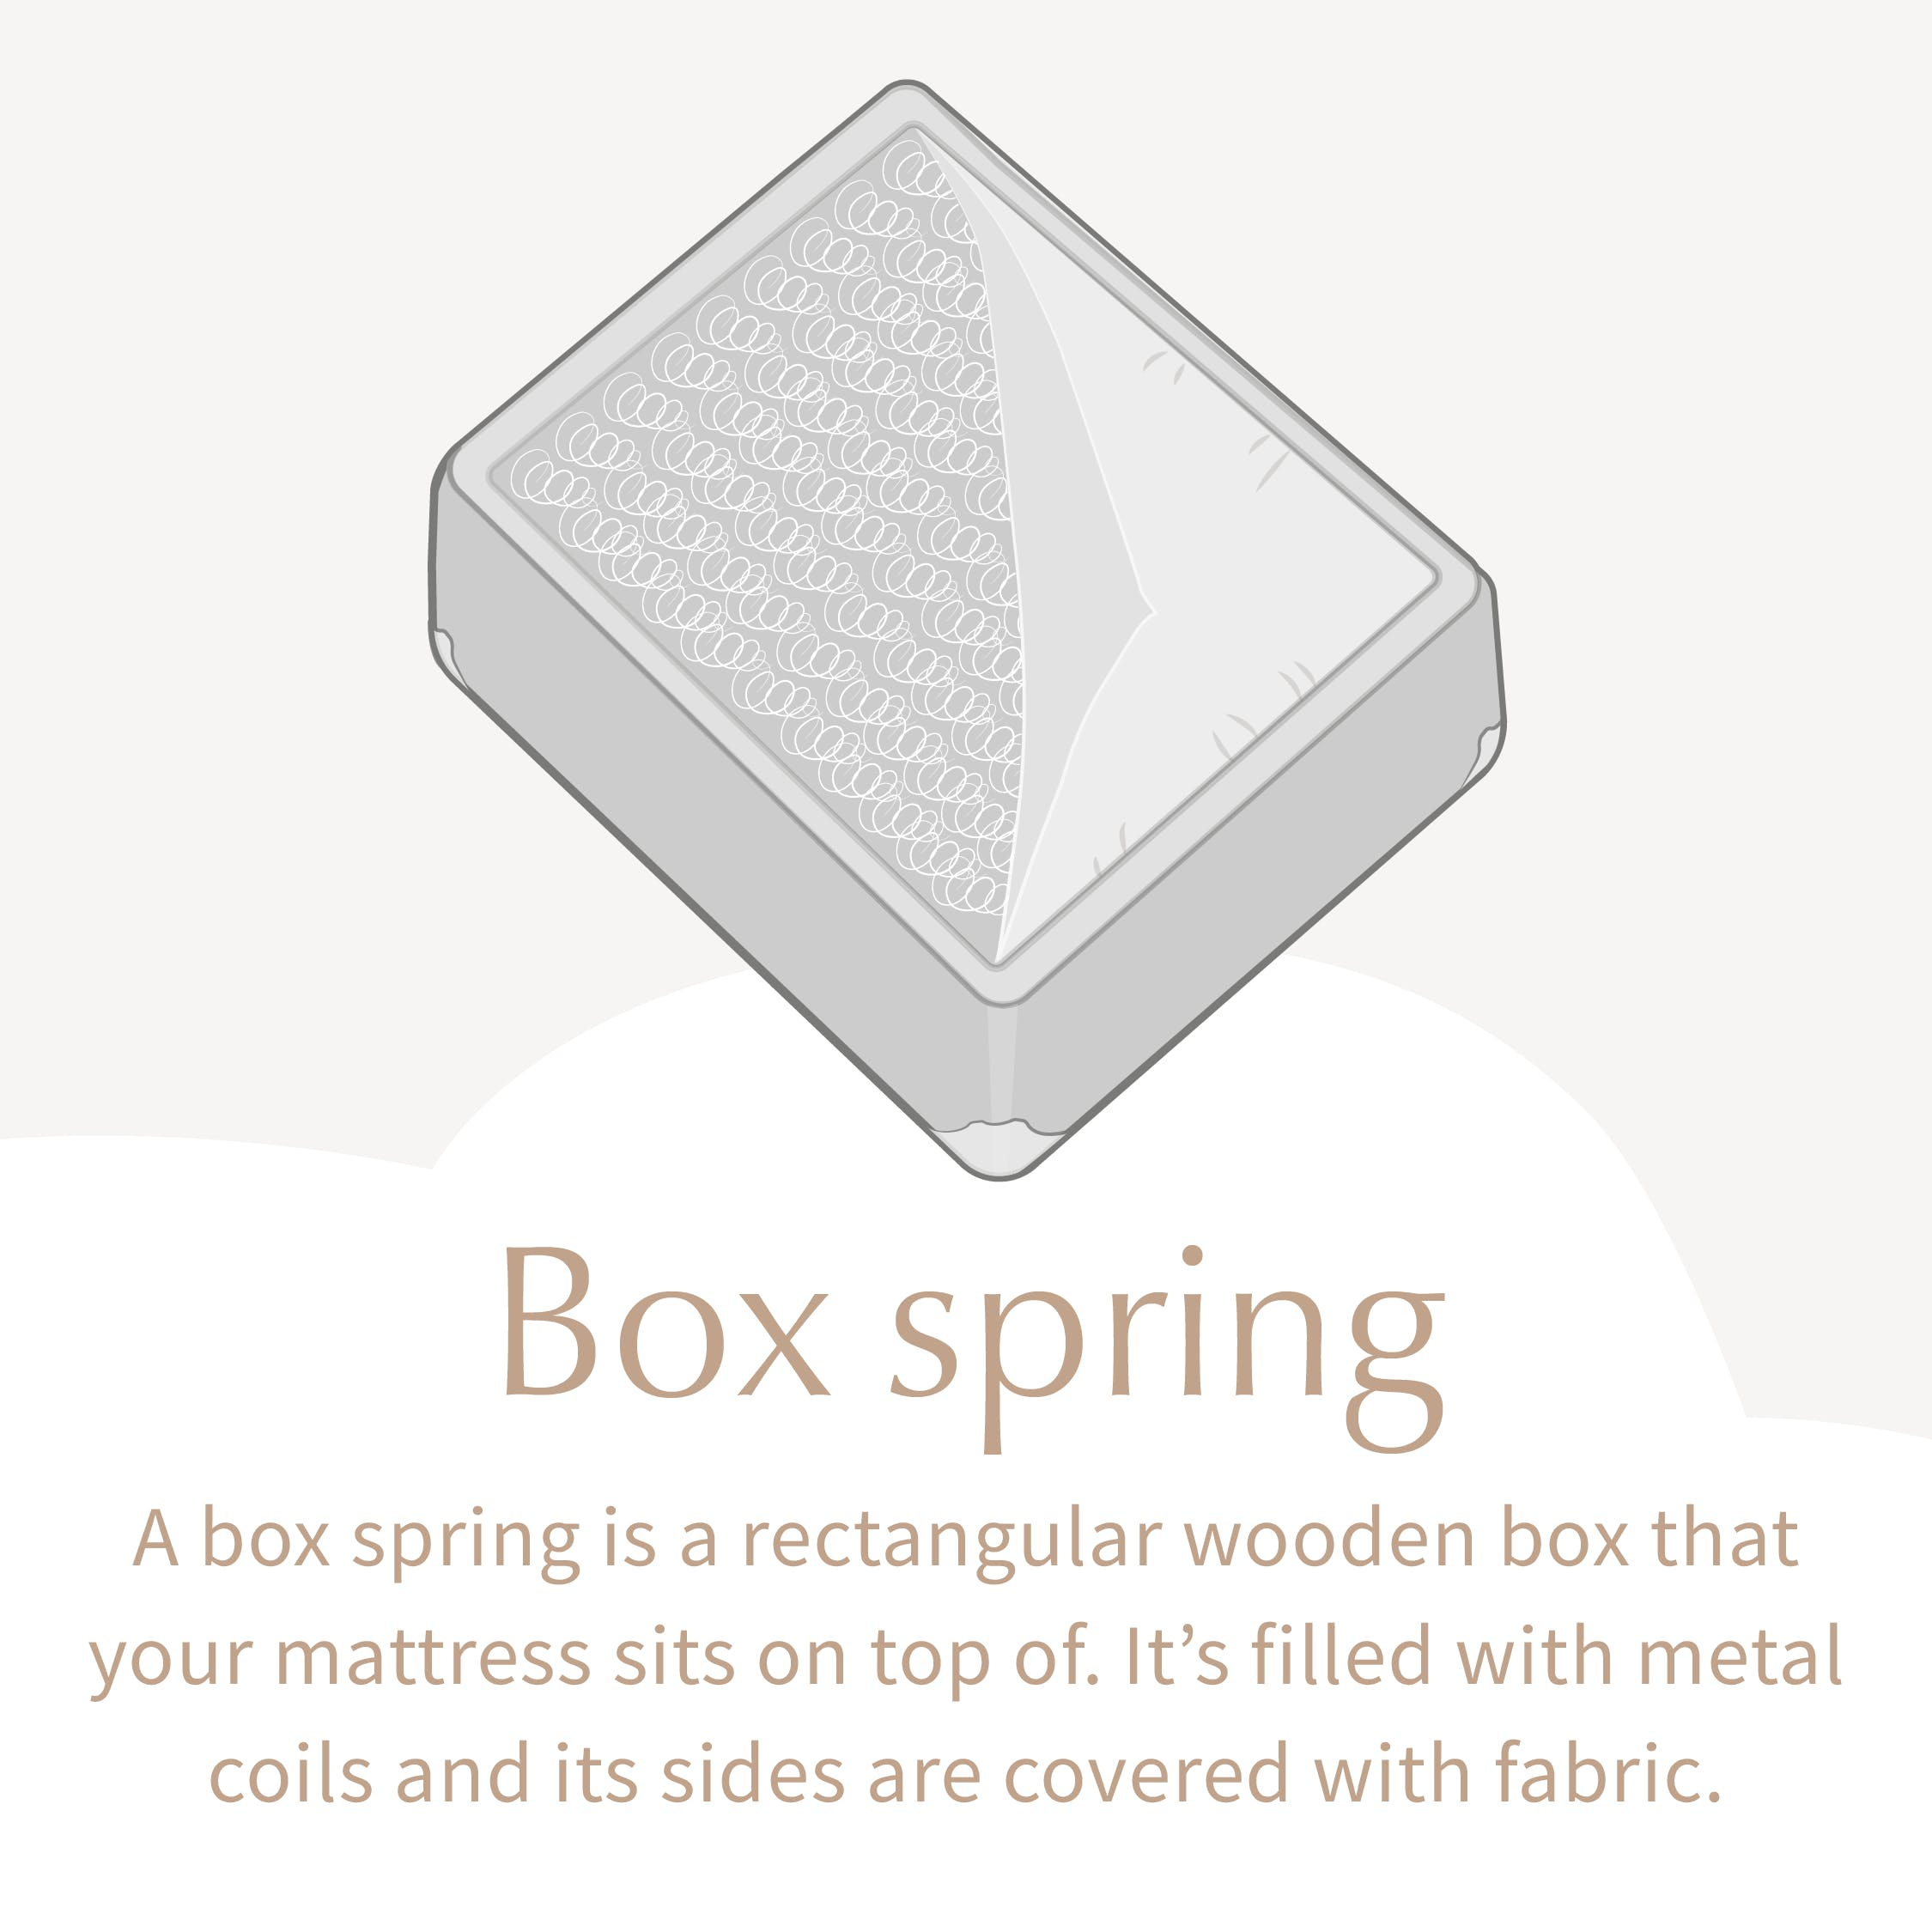 illustration of a box spring with description underneath: